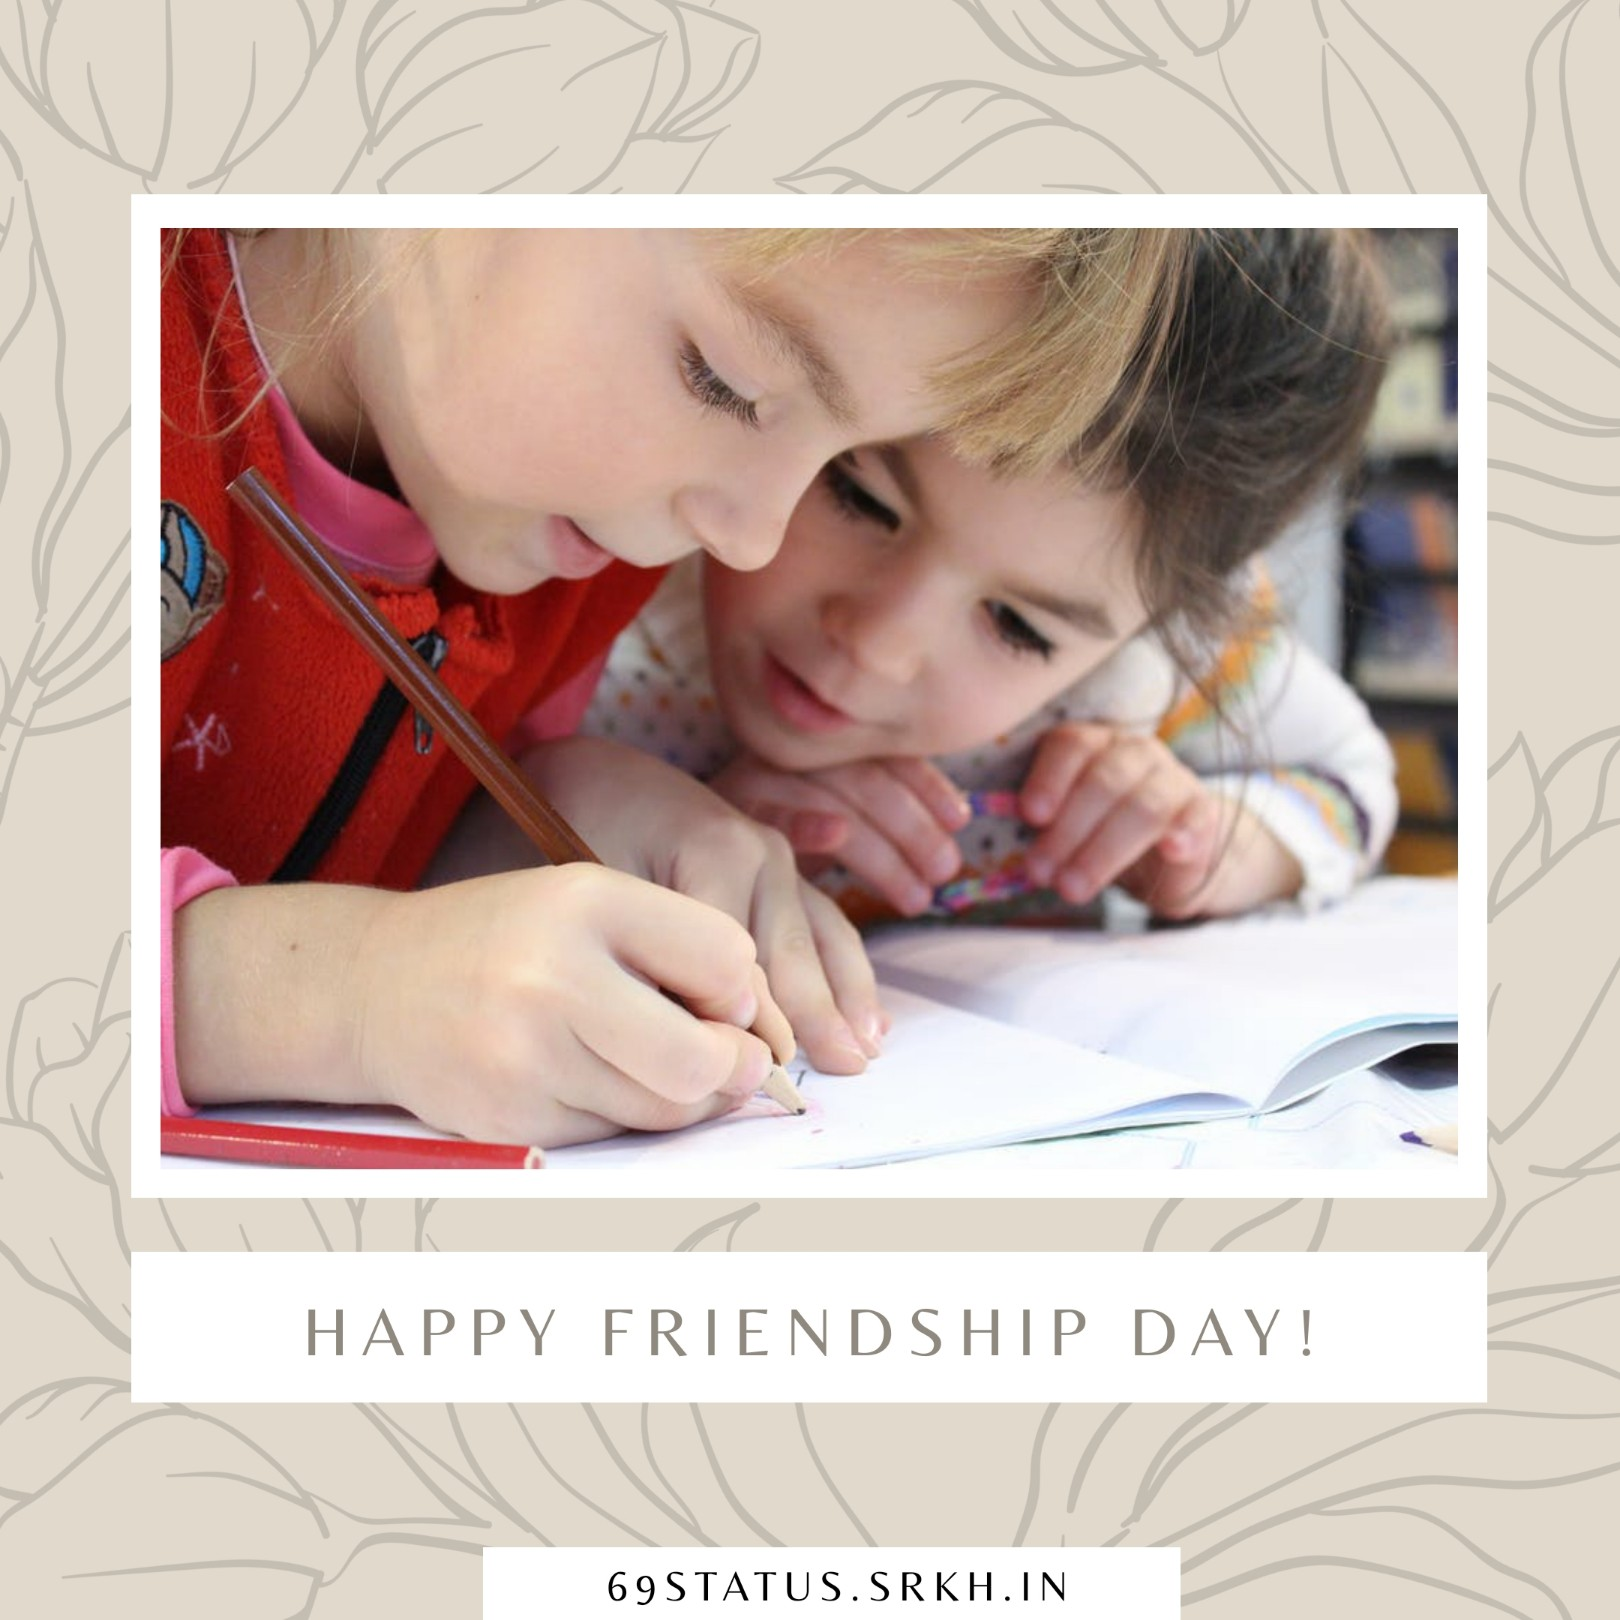 Images on Friendship Day full HD free download.